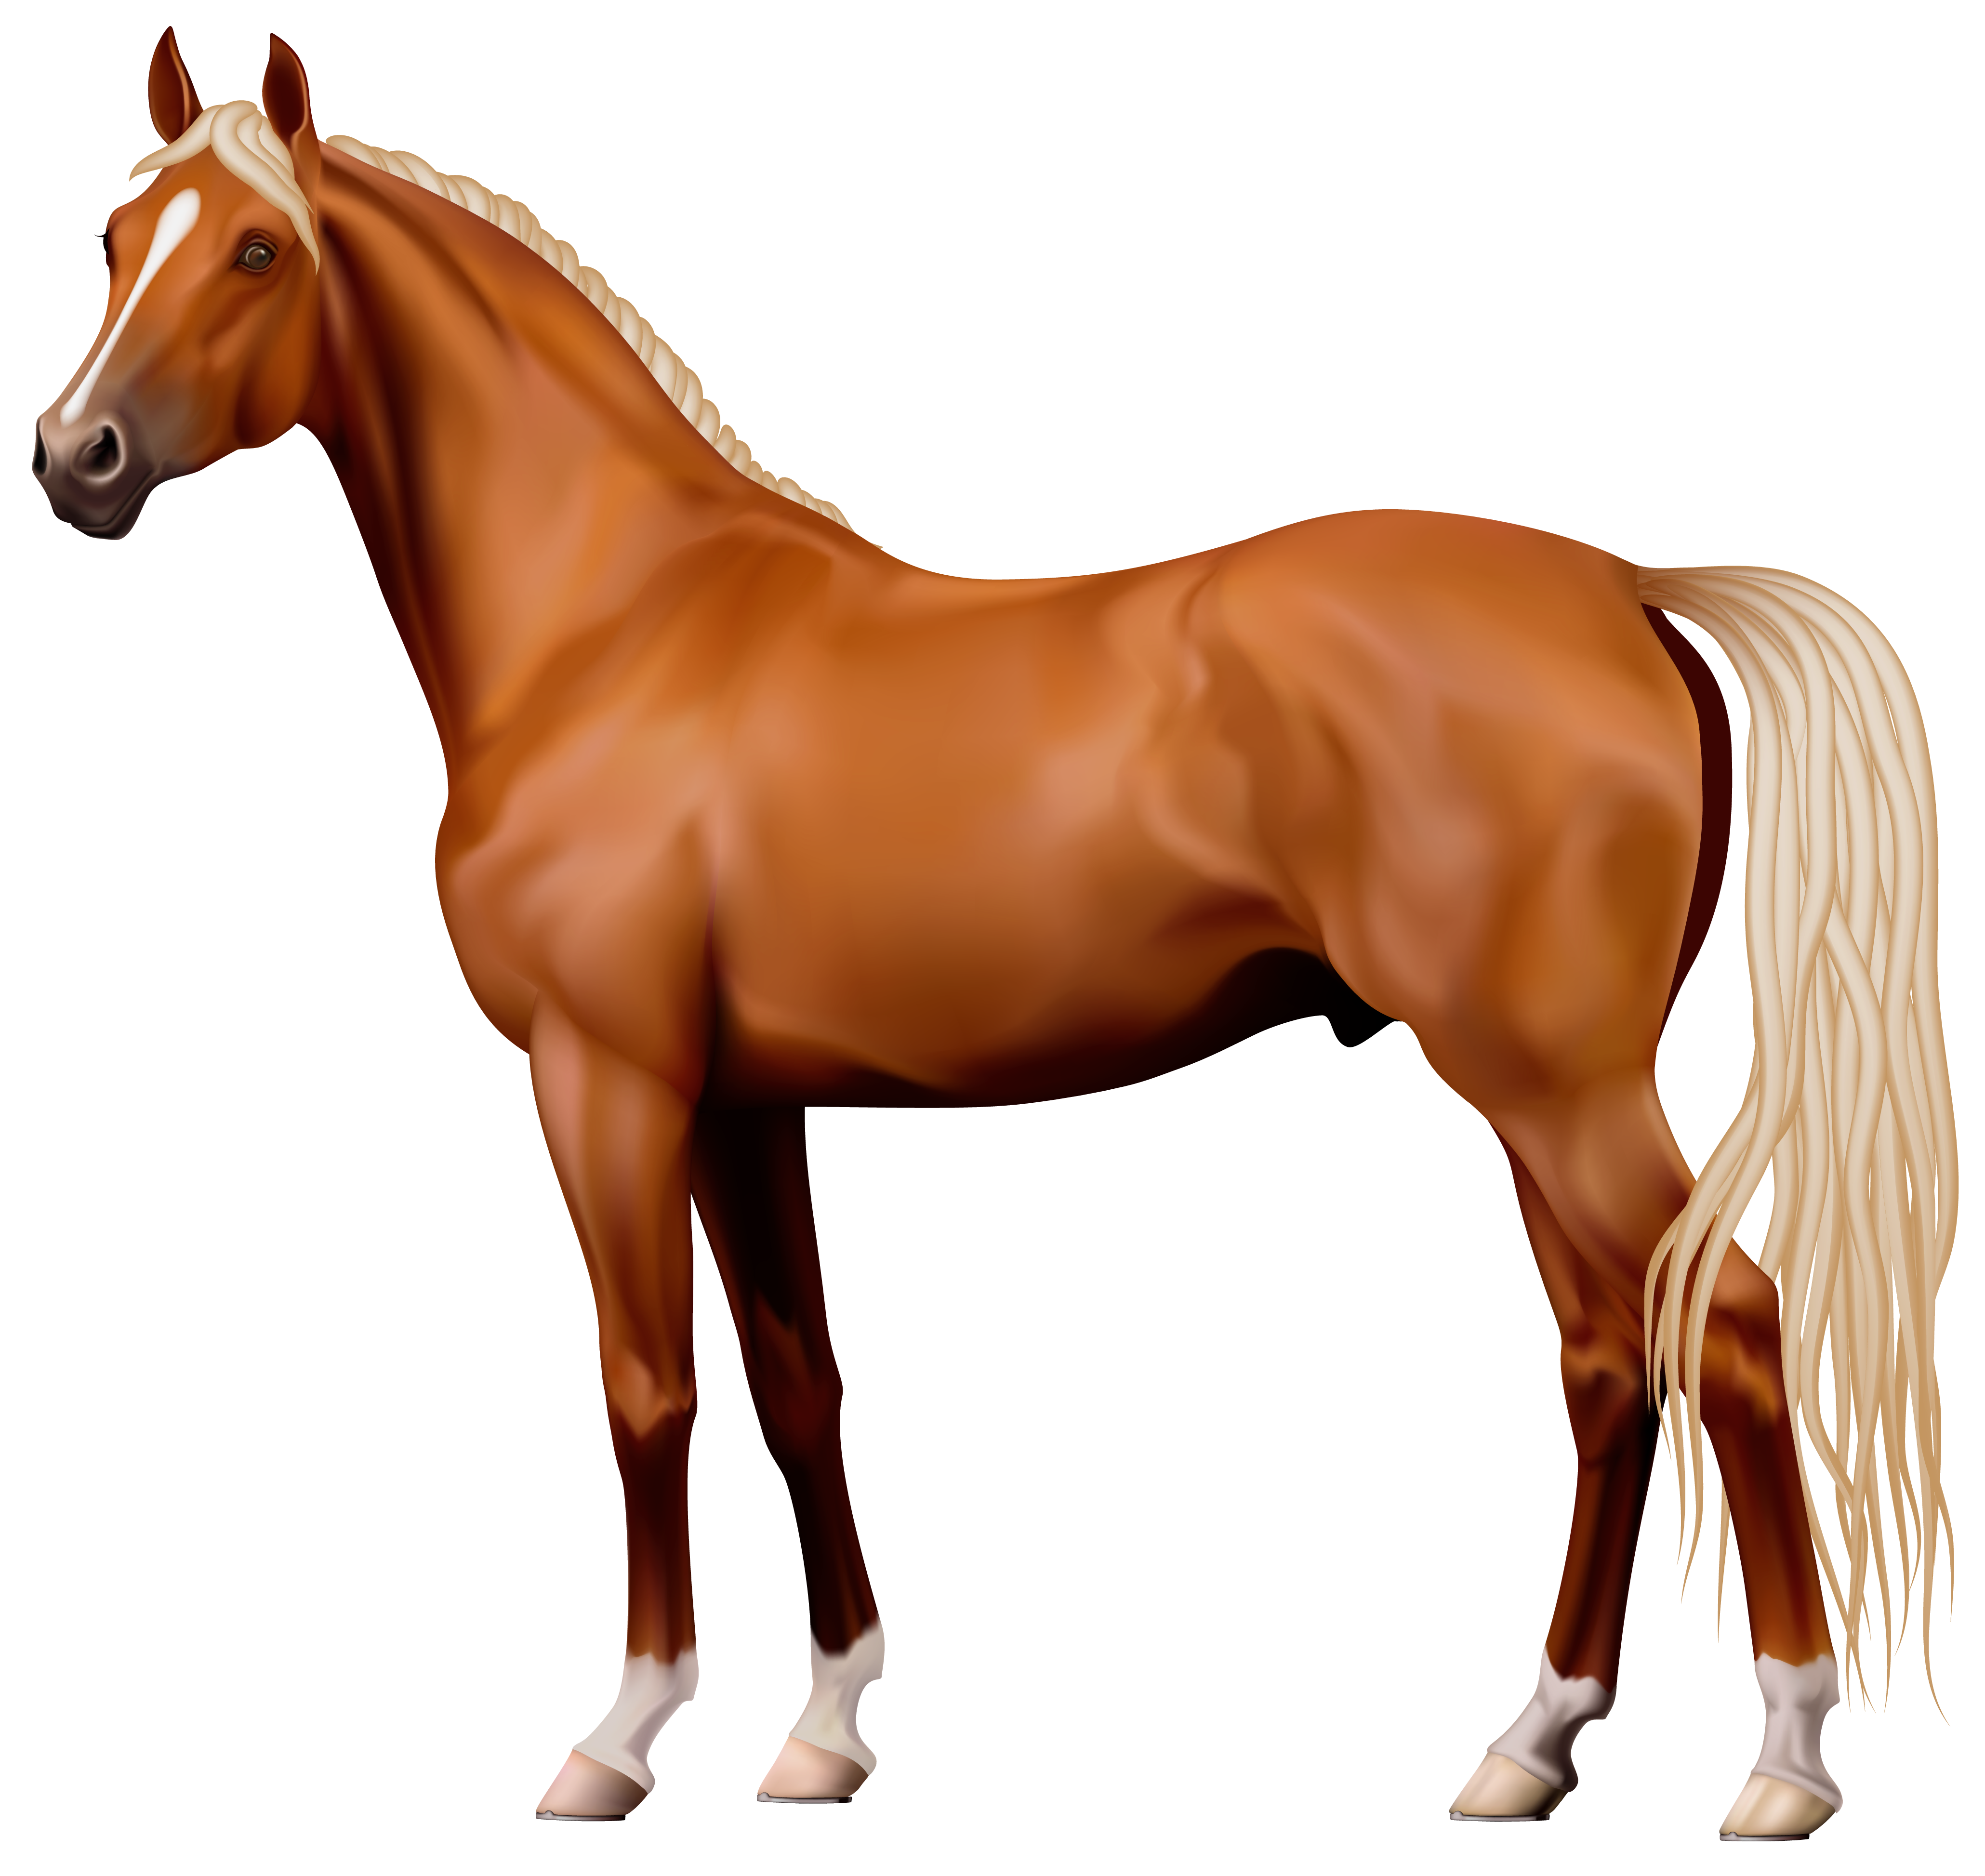 Horse png images - photo#10 - Horse PNG